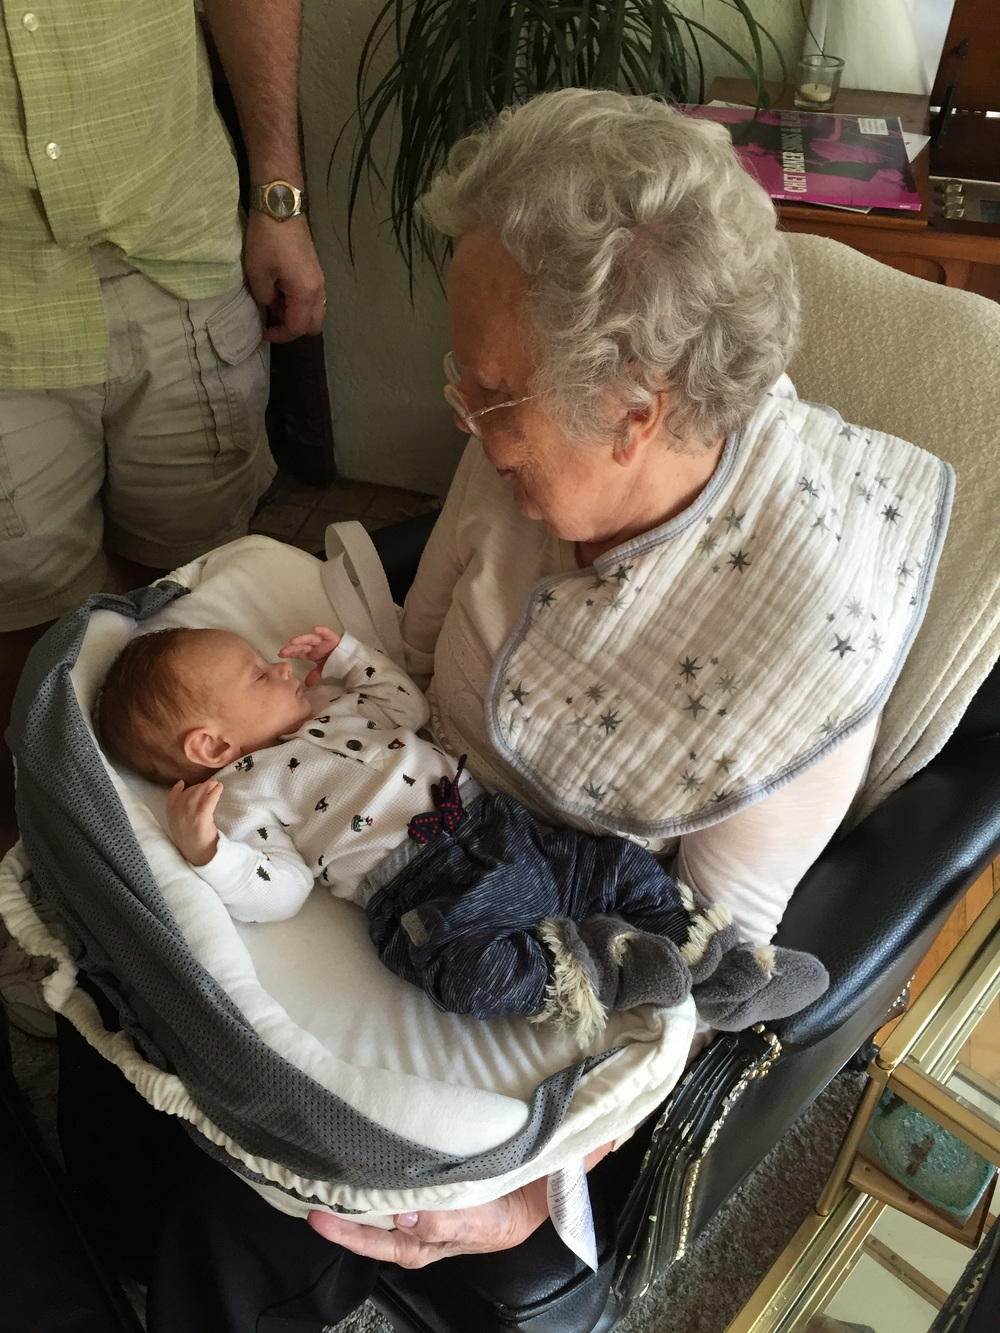 Meeting great Granny ❤️❤️❤️❤️